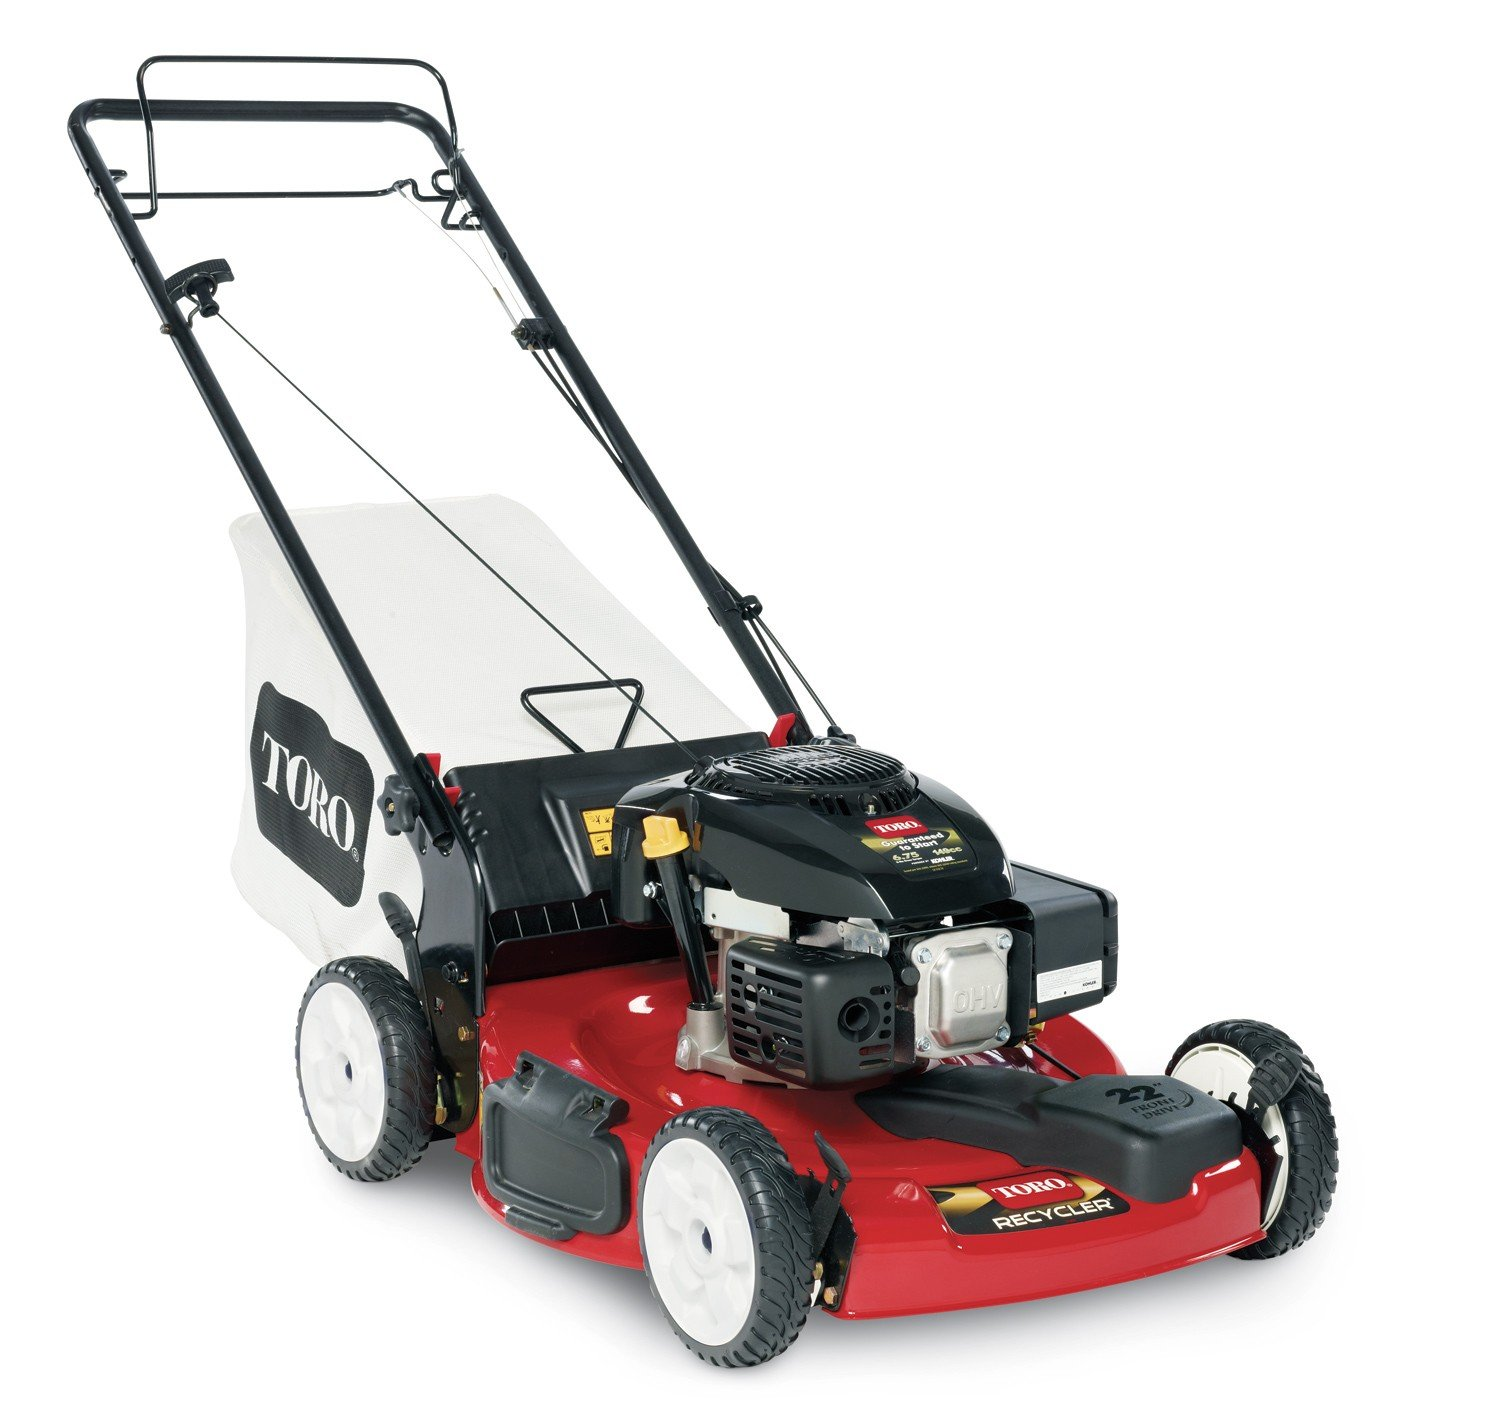 Toro Lawn Mower : Appliances for your home and garden best toro lawn mowers